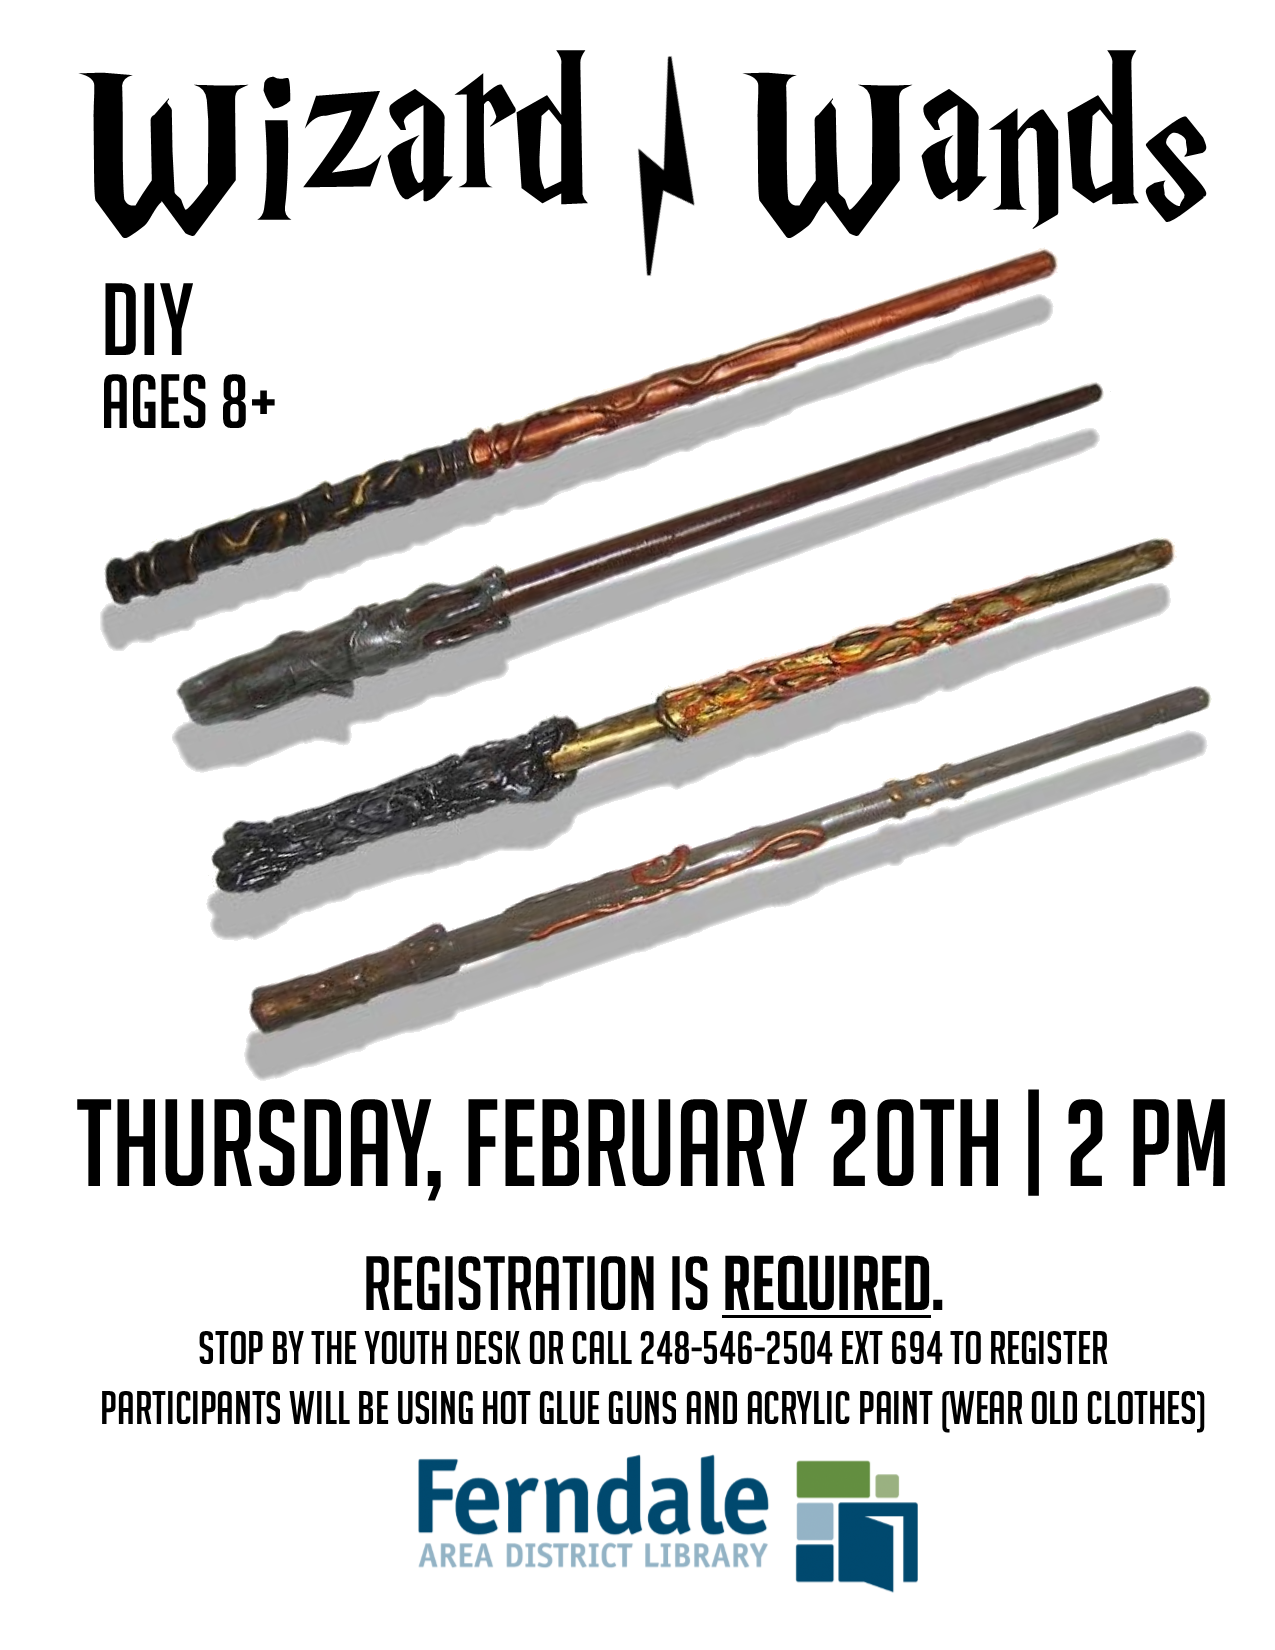 DIY Wizard Wands (Ages 8+)